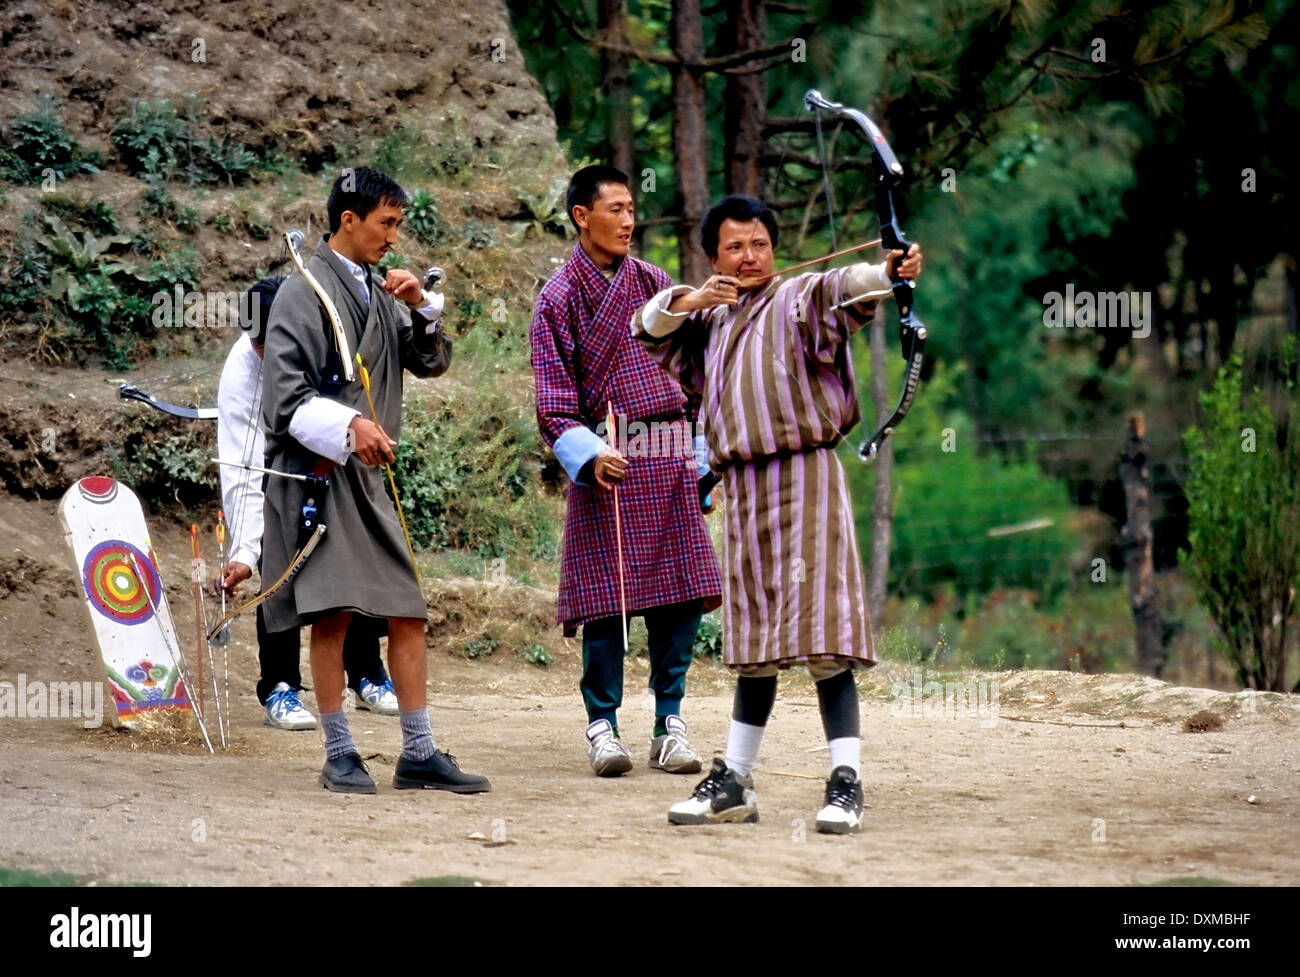 Archery practice in Thimpu, Bhutan. Digitally Manipulated Image. Stylised by sharpening and enhancing color. - Stock Image